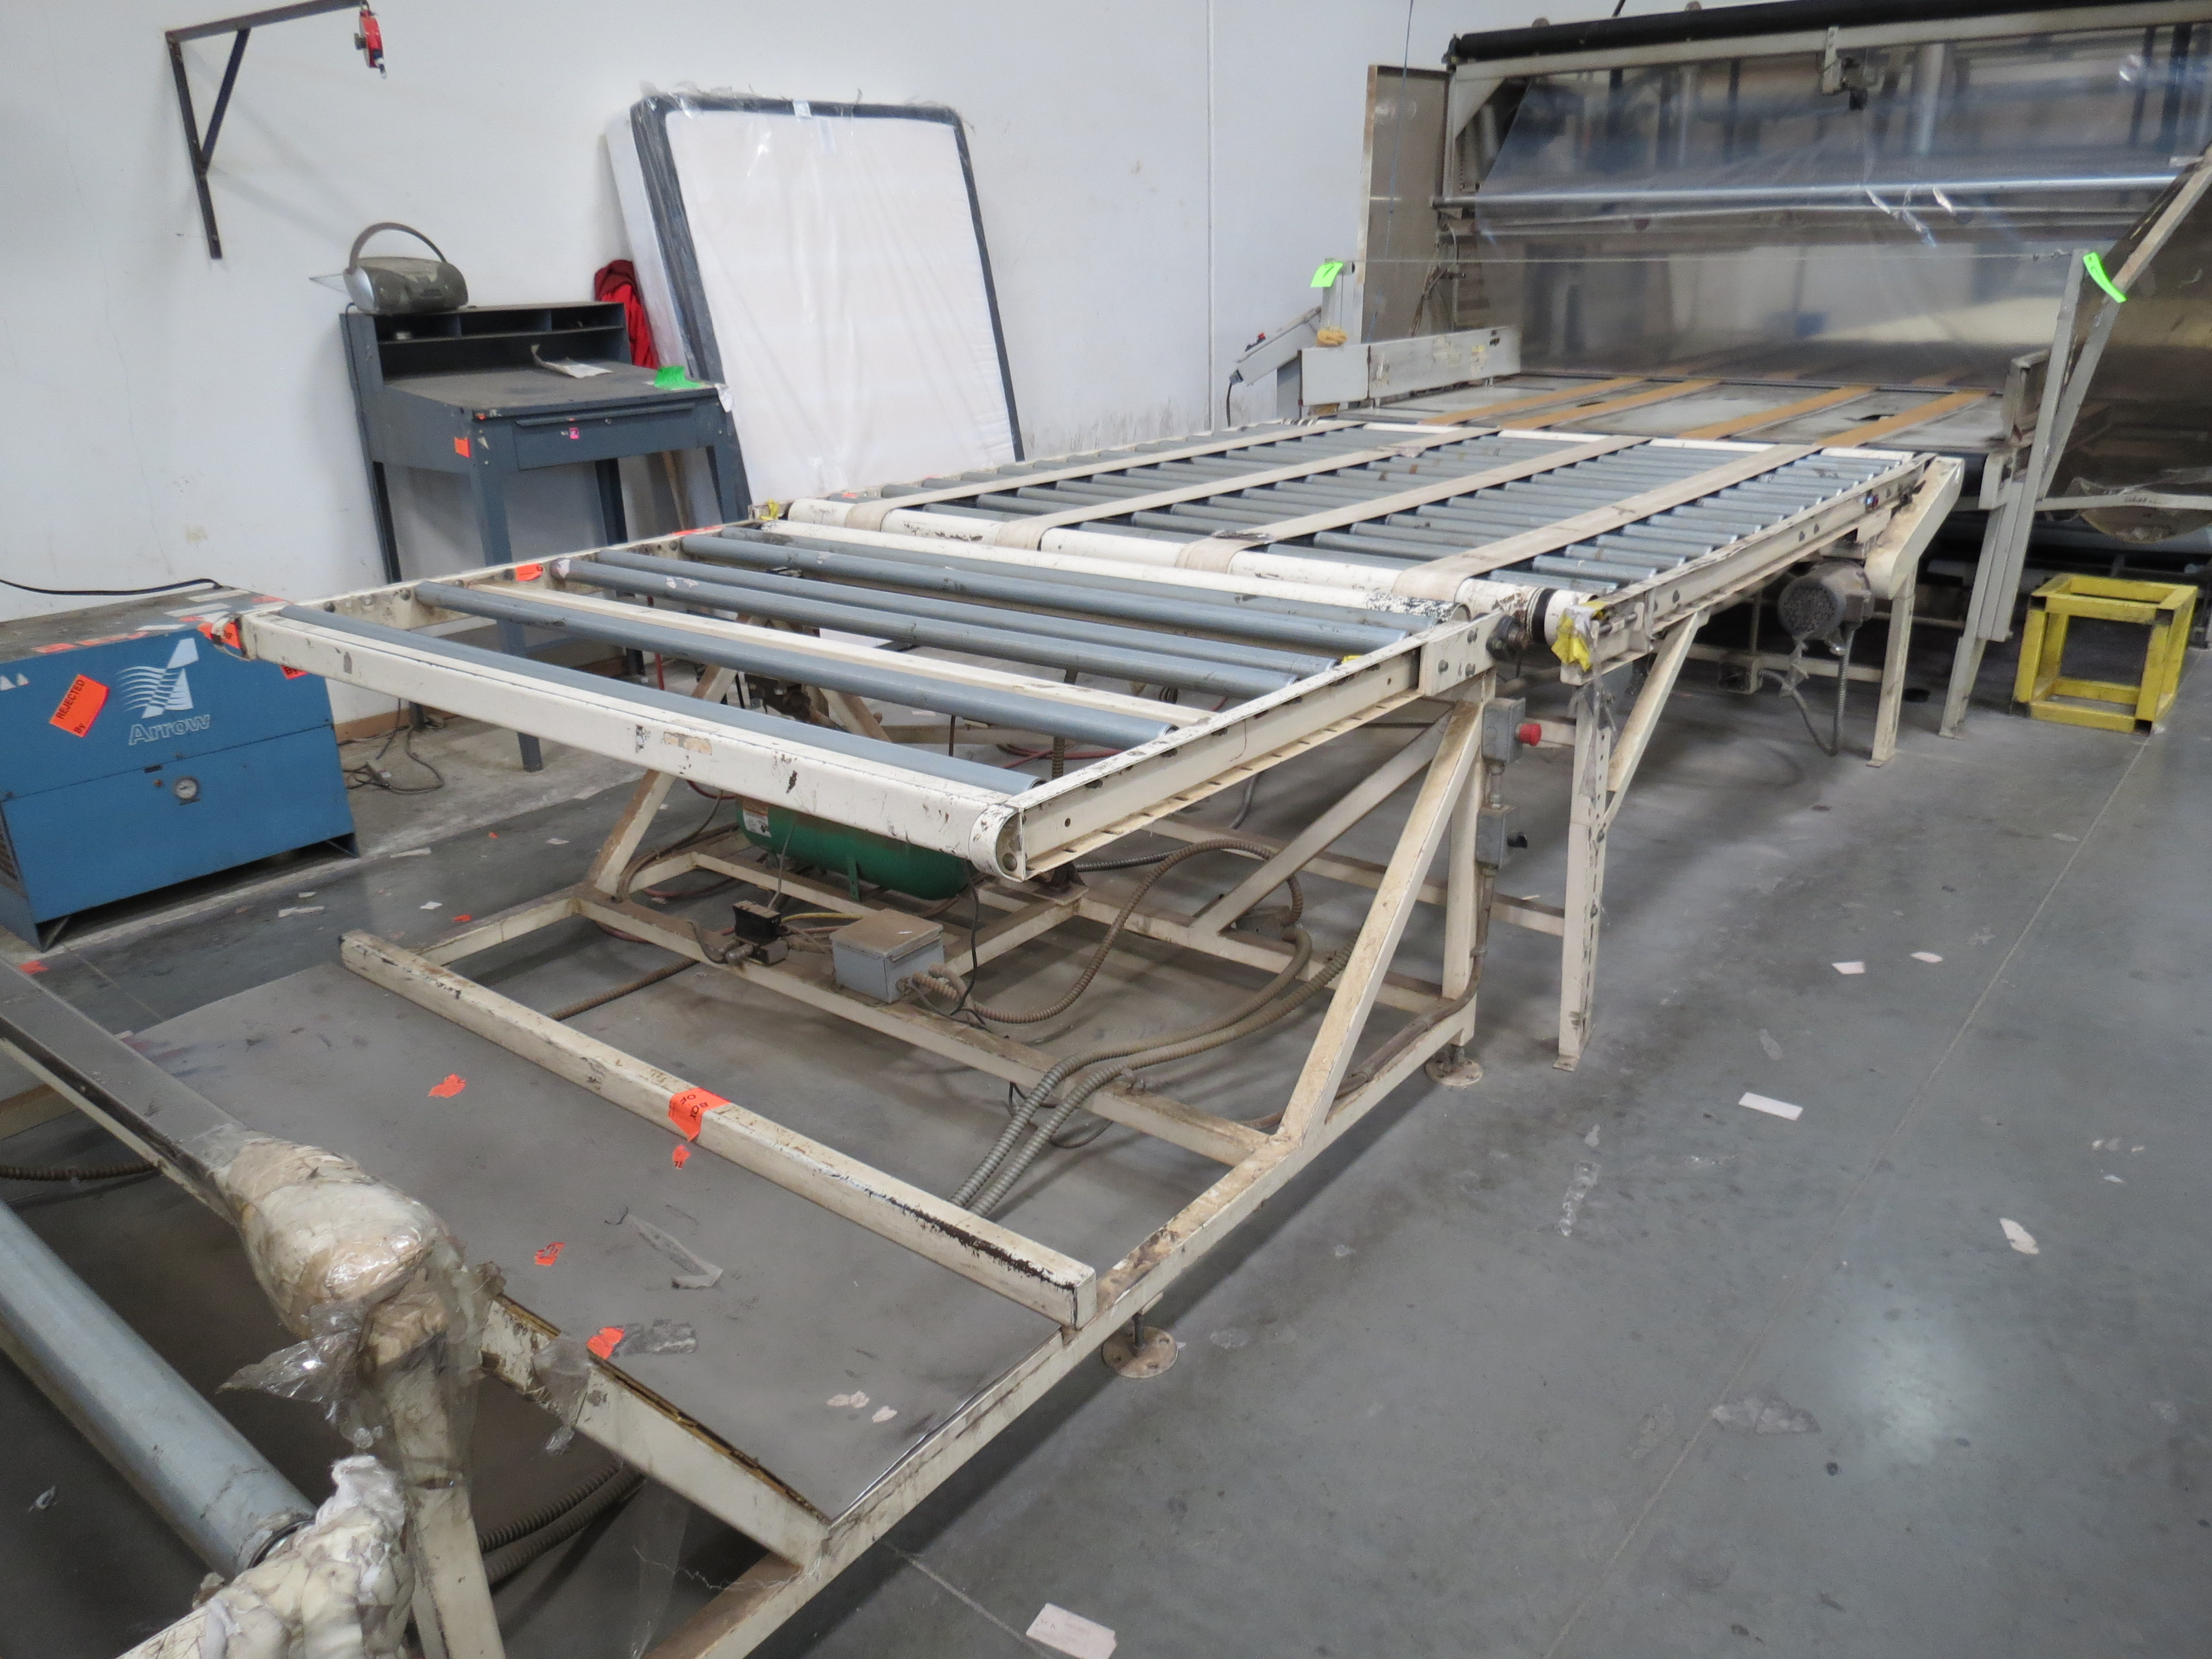 """Gribetz Bagging Machine W/ 10"""" infeed & 50' Outfeed Motorized Conveyor System - Image 3 of 9"""